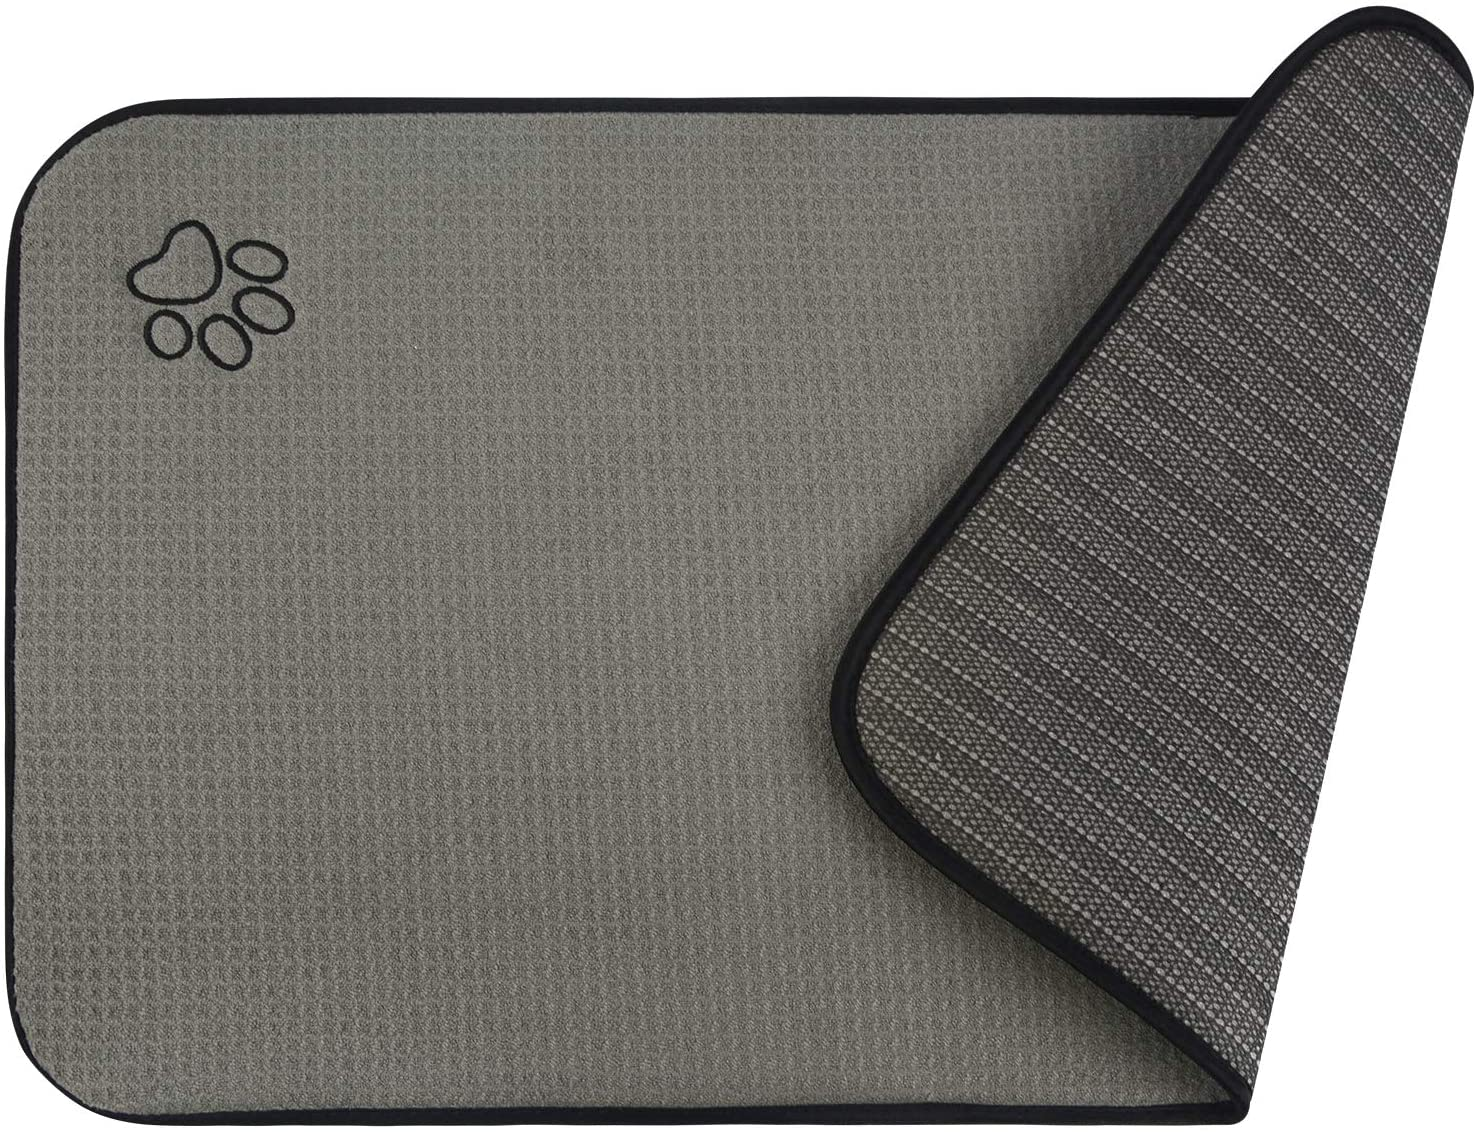 SINLAND Microfiber Pet Bowl Mat Dish Drying Mat with Anti-Skid Backing